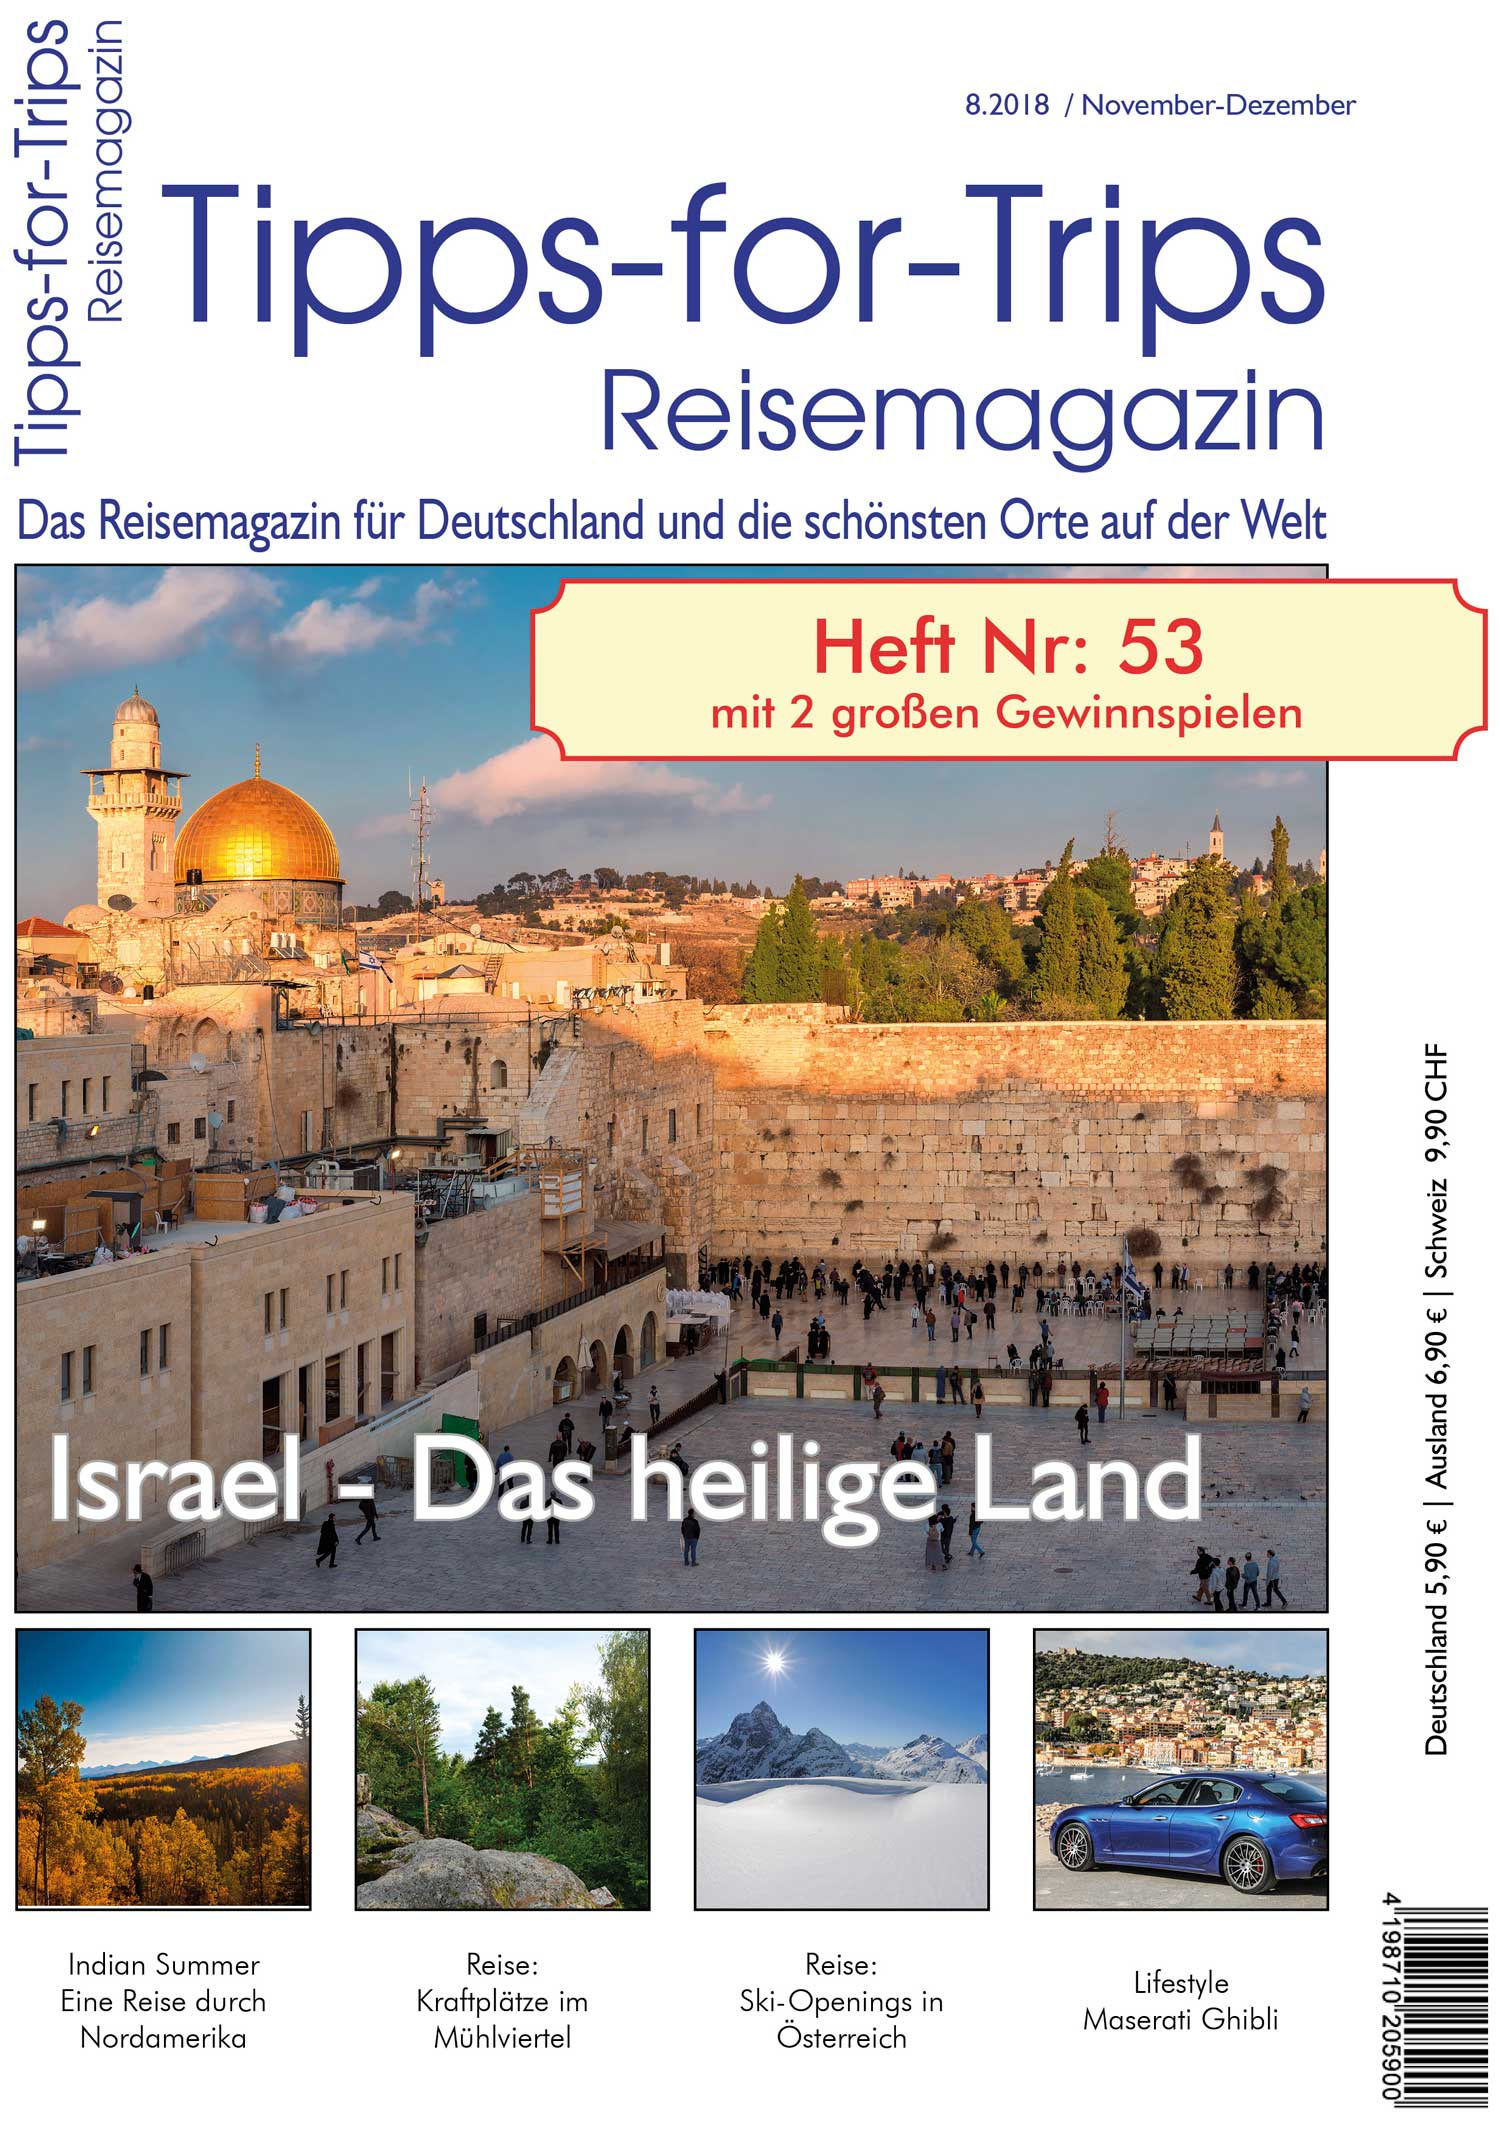 Tipps-for-Trips Heft 8-2018